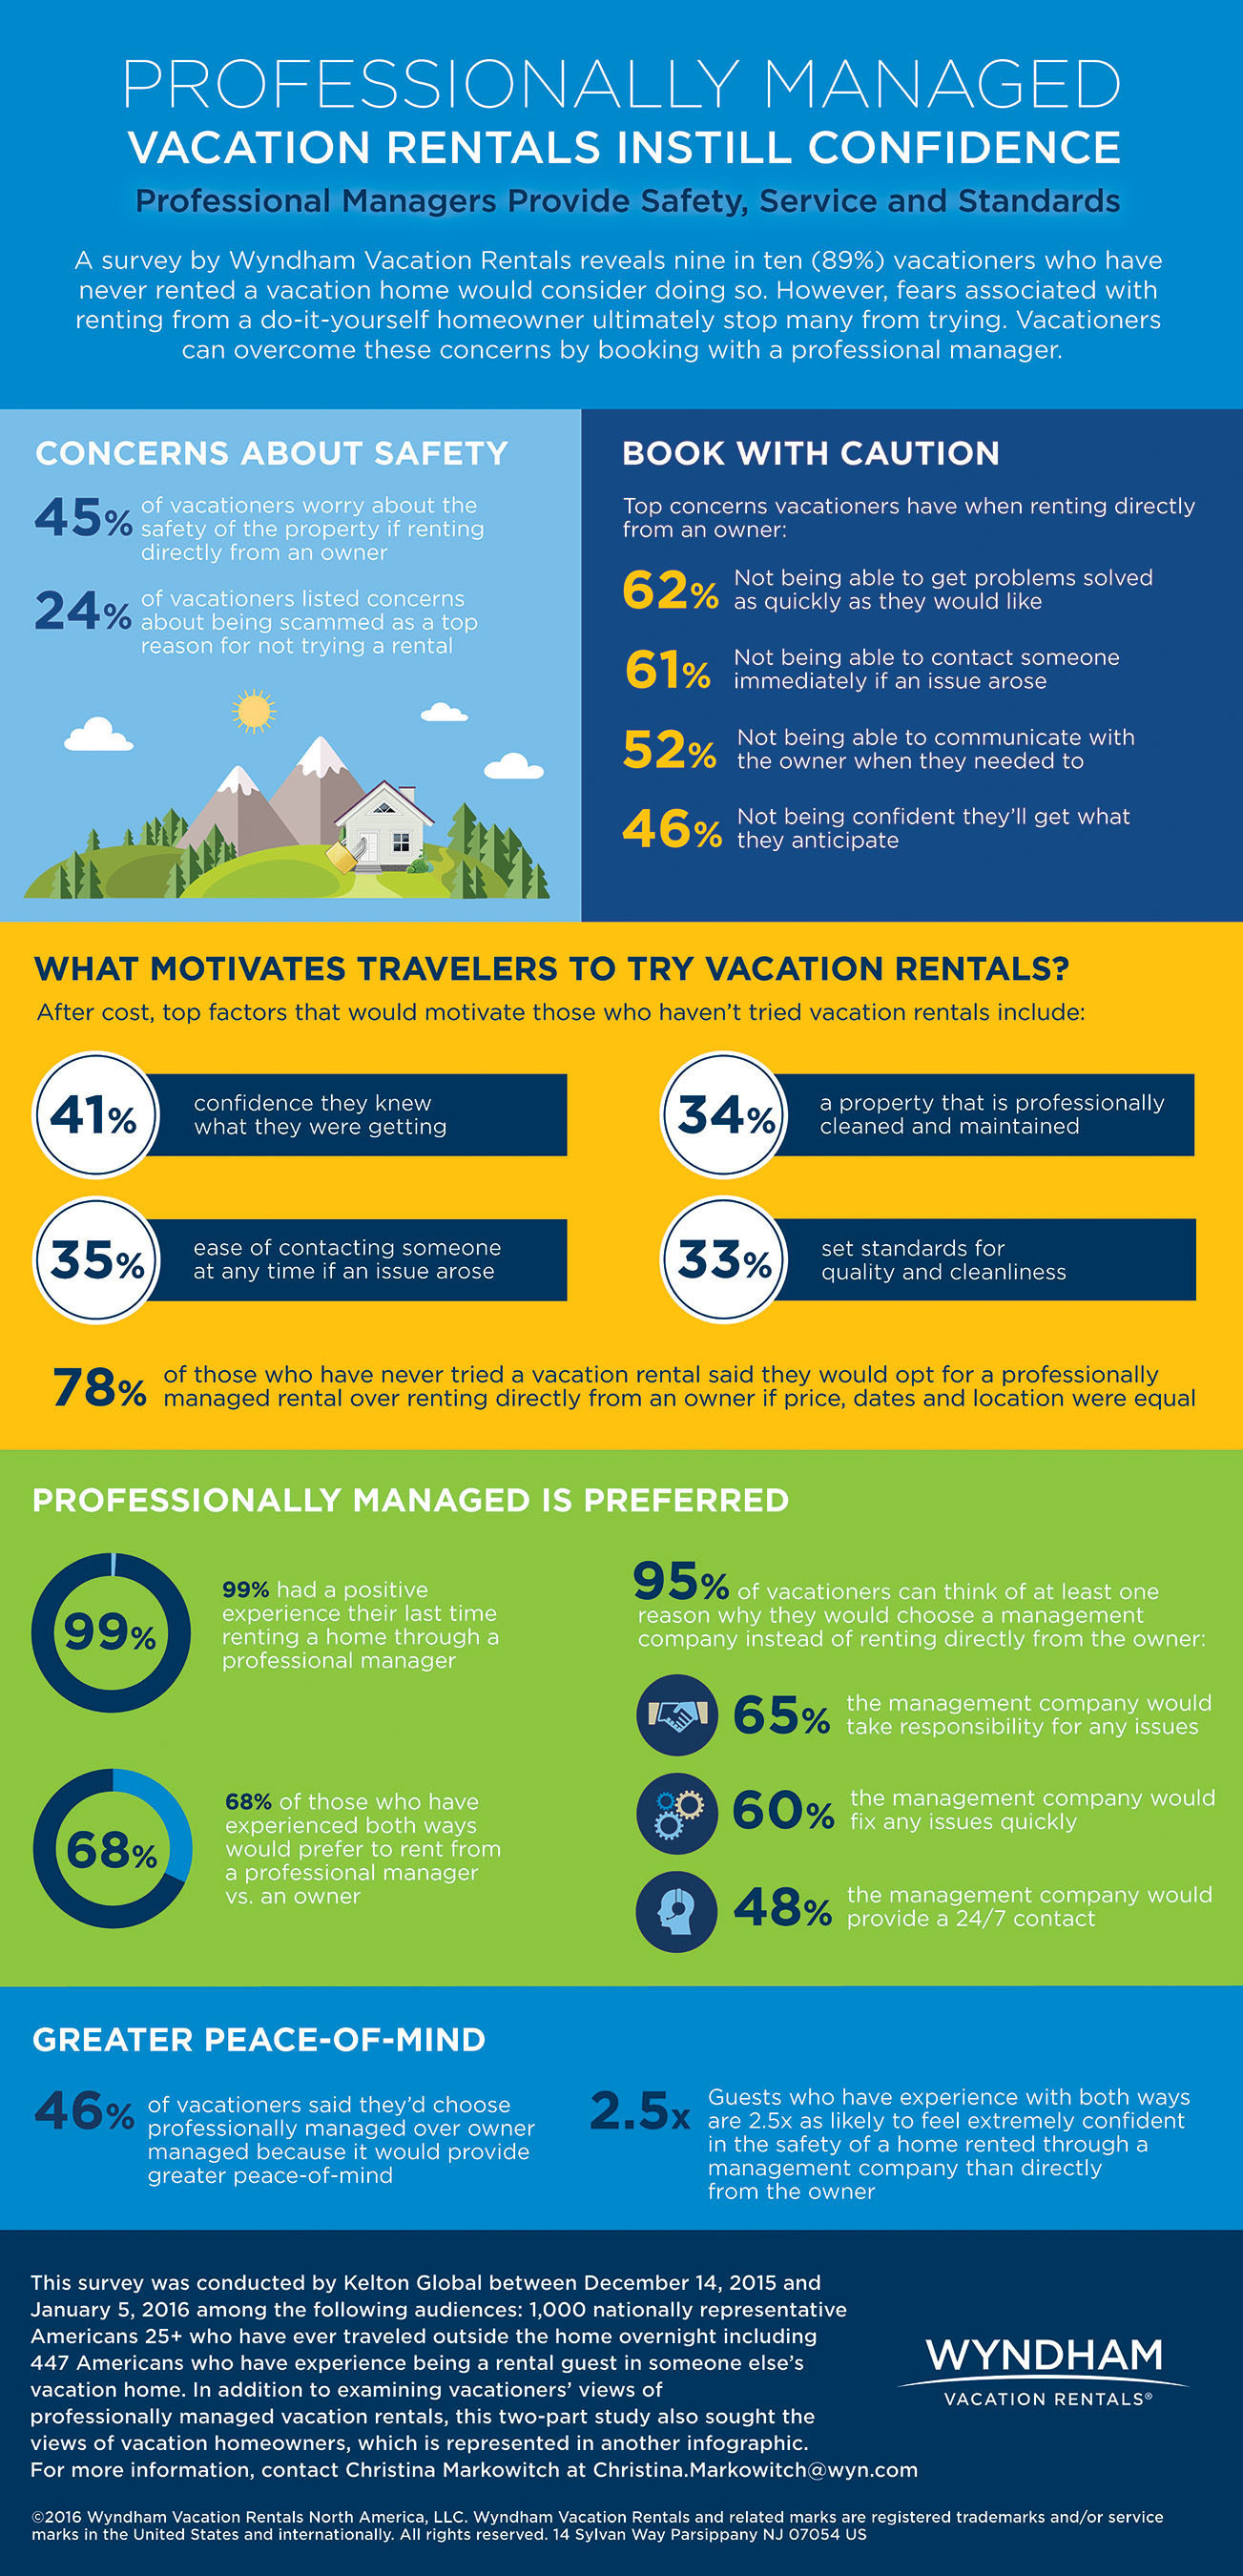 A survey by Wyndham Vacation Rentals reveals nine in ten (89%) vacationers who have never rented a vacation home would consider doing so. But fears associated with renting from a do-it-yourself homeowner stop many from trying. (PRNewsFoto/Wyndham Vacation Rentals)